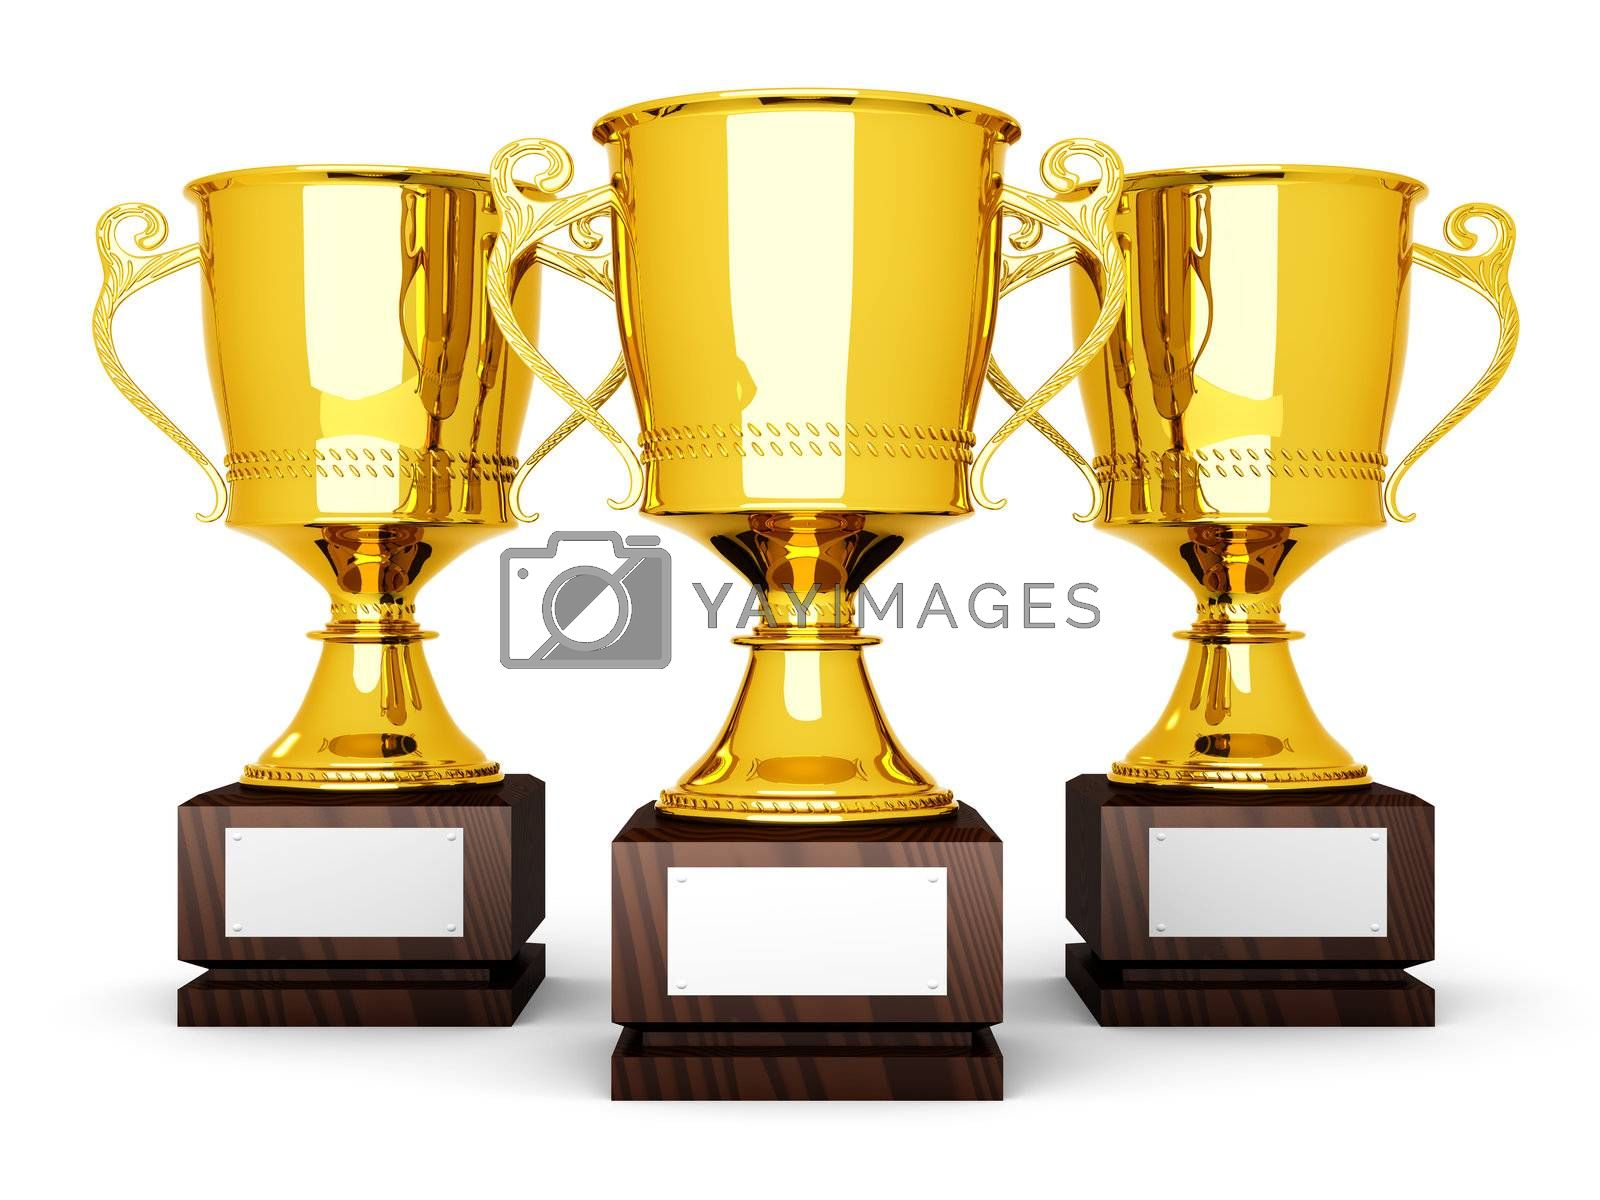 Three Trophies by Spectral